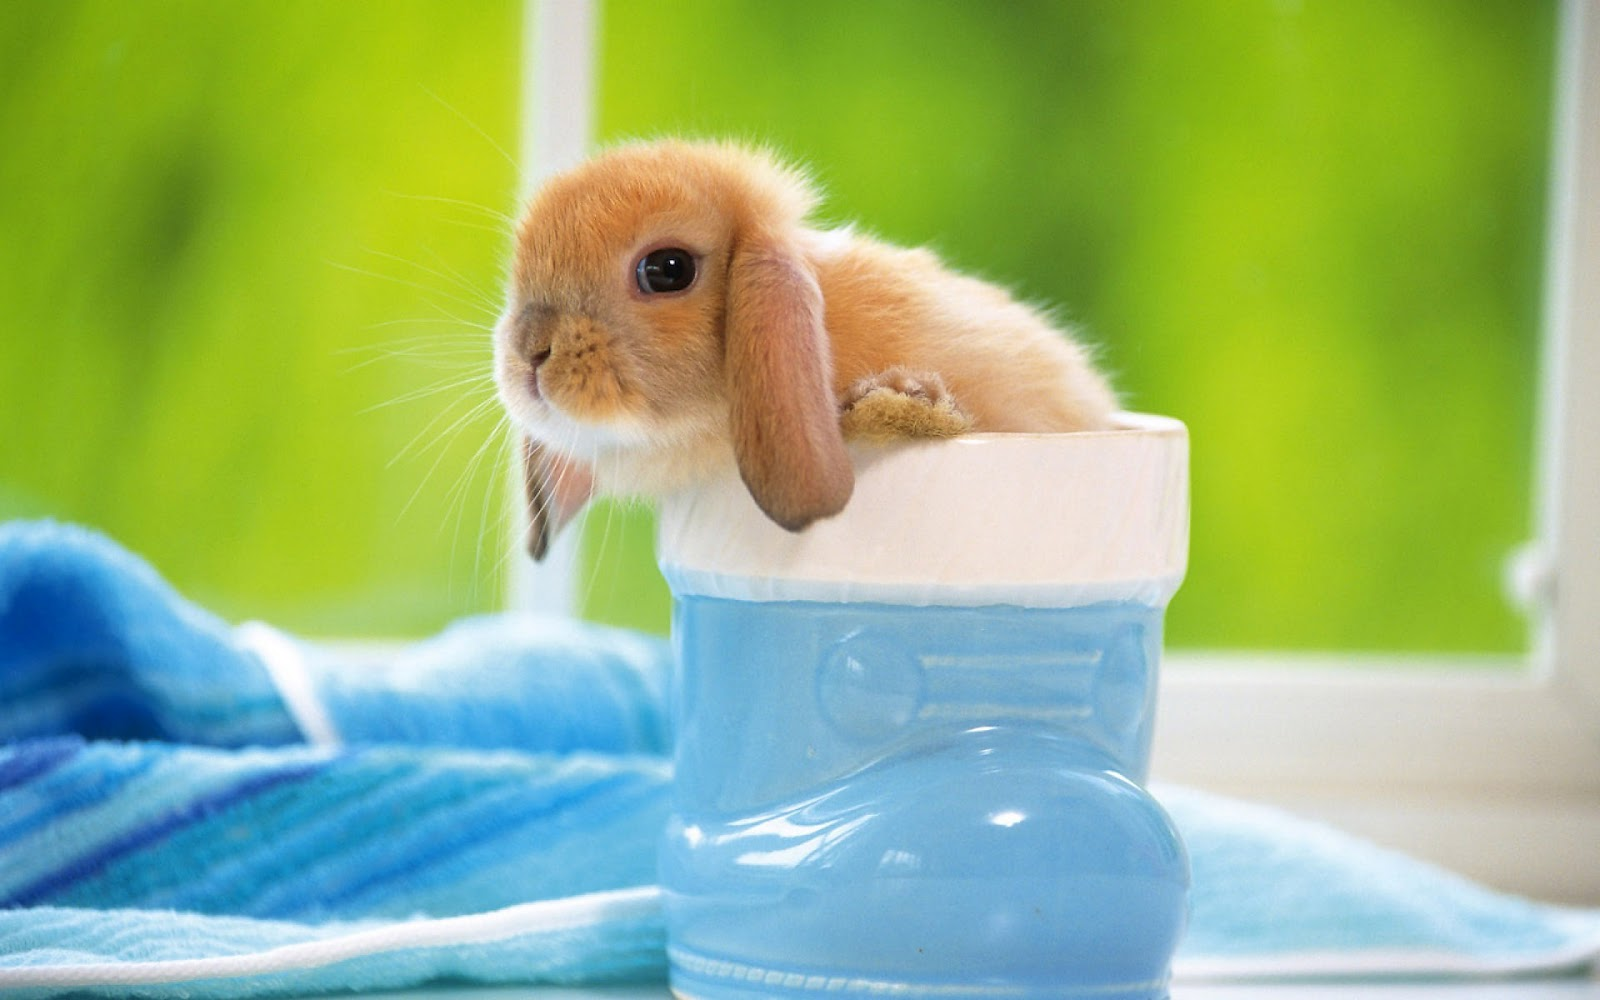 Bunny wallpapers cute rabbit wallpapers cute rabbits hd 1080p cute ...